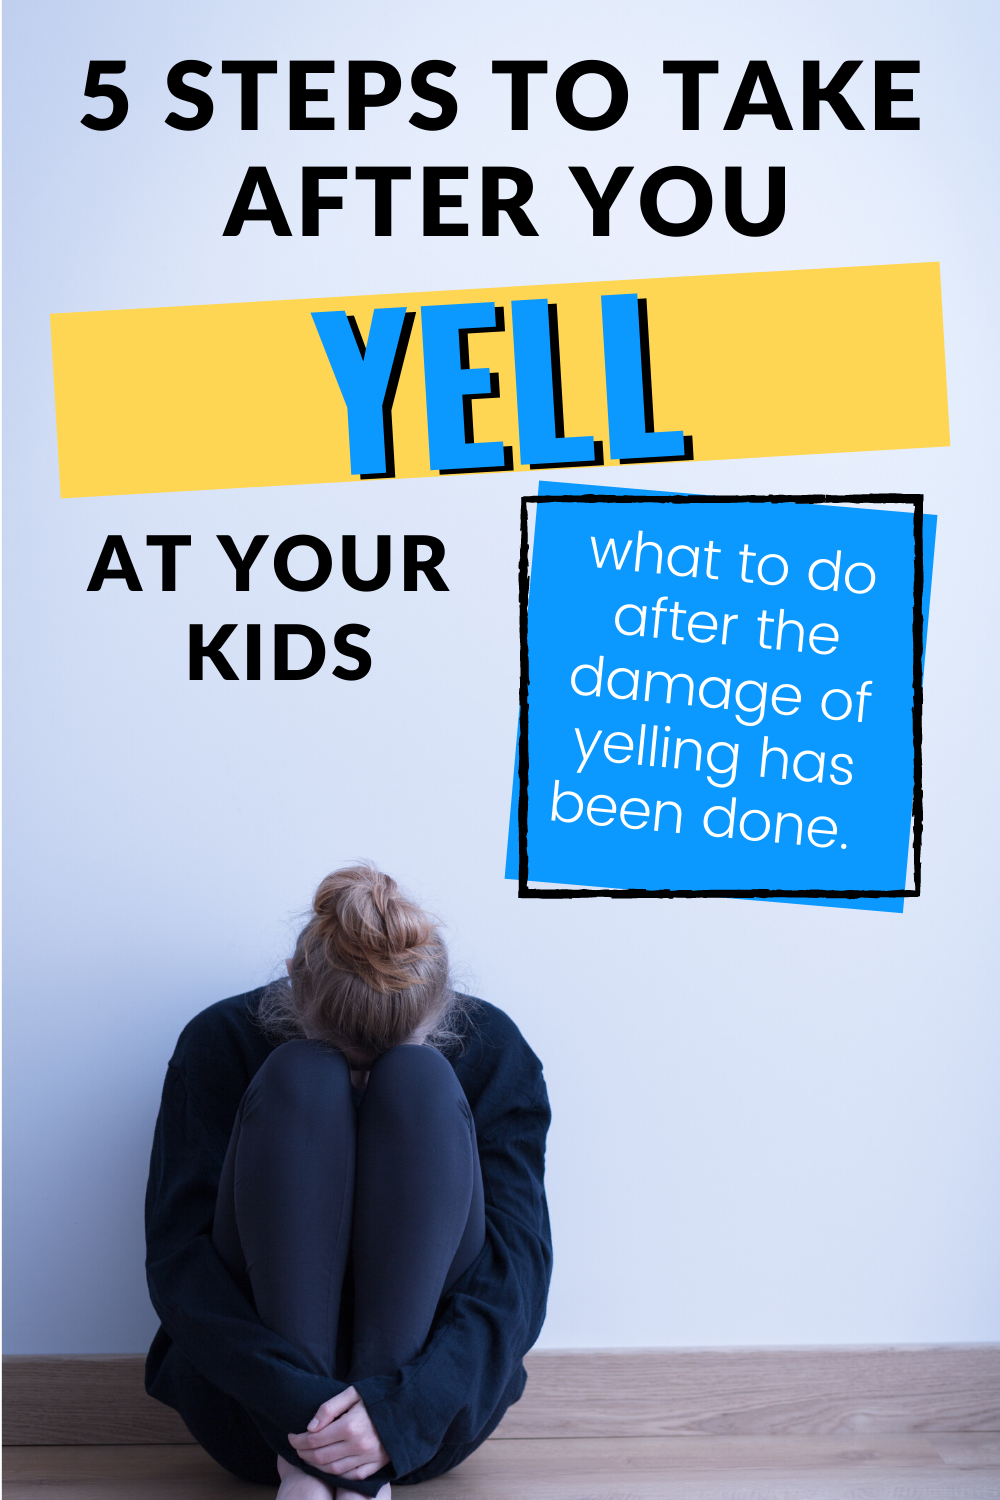 You've yelled at your kids. You feel horrible and guilty. Here's what to do after you yell at your kids. #positiveparenting #adviceformoms #momadvice #kidsandparenting #toddler